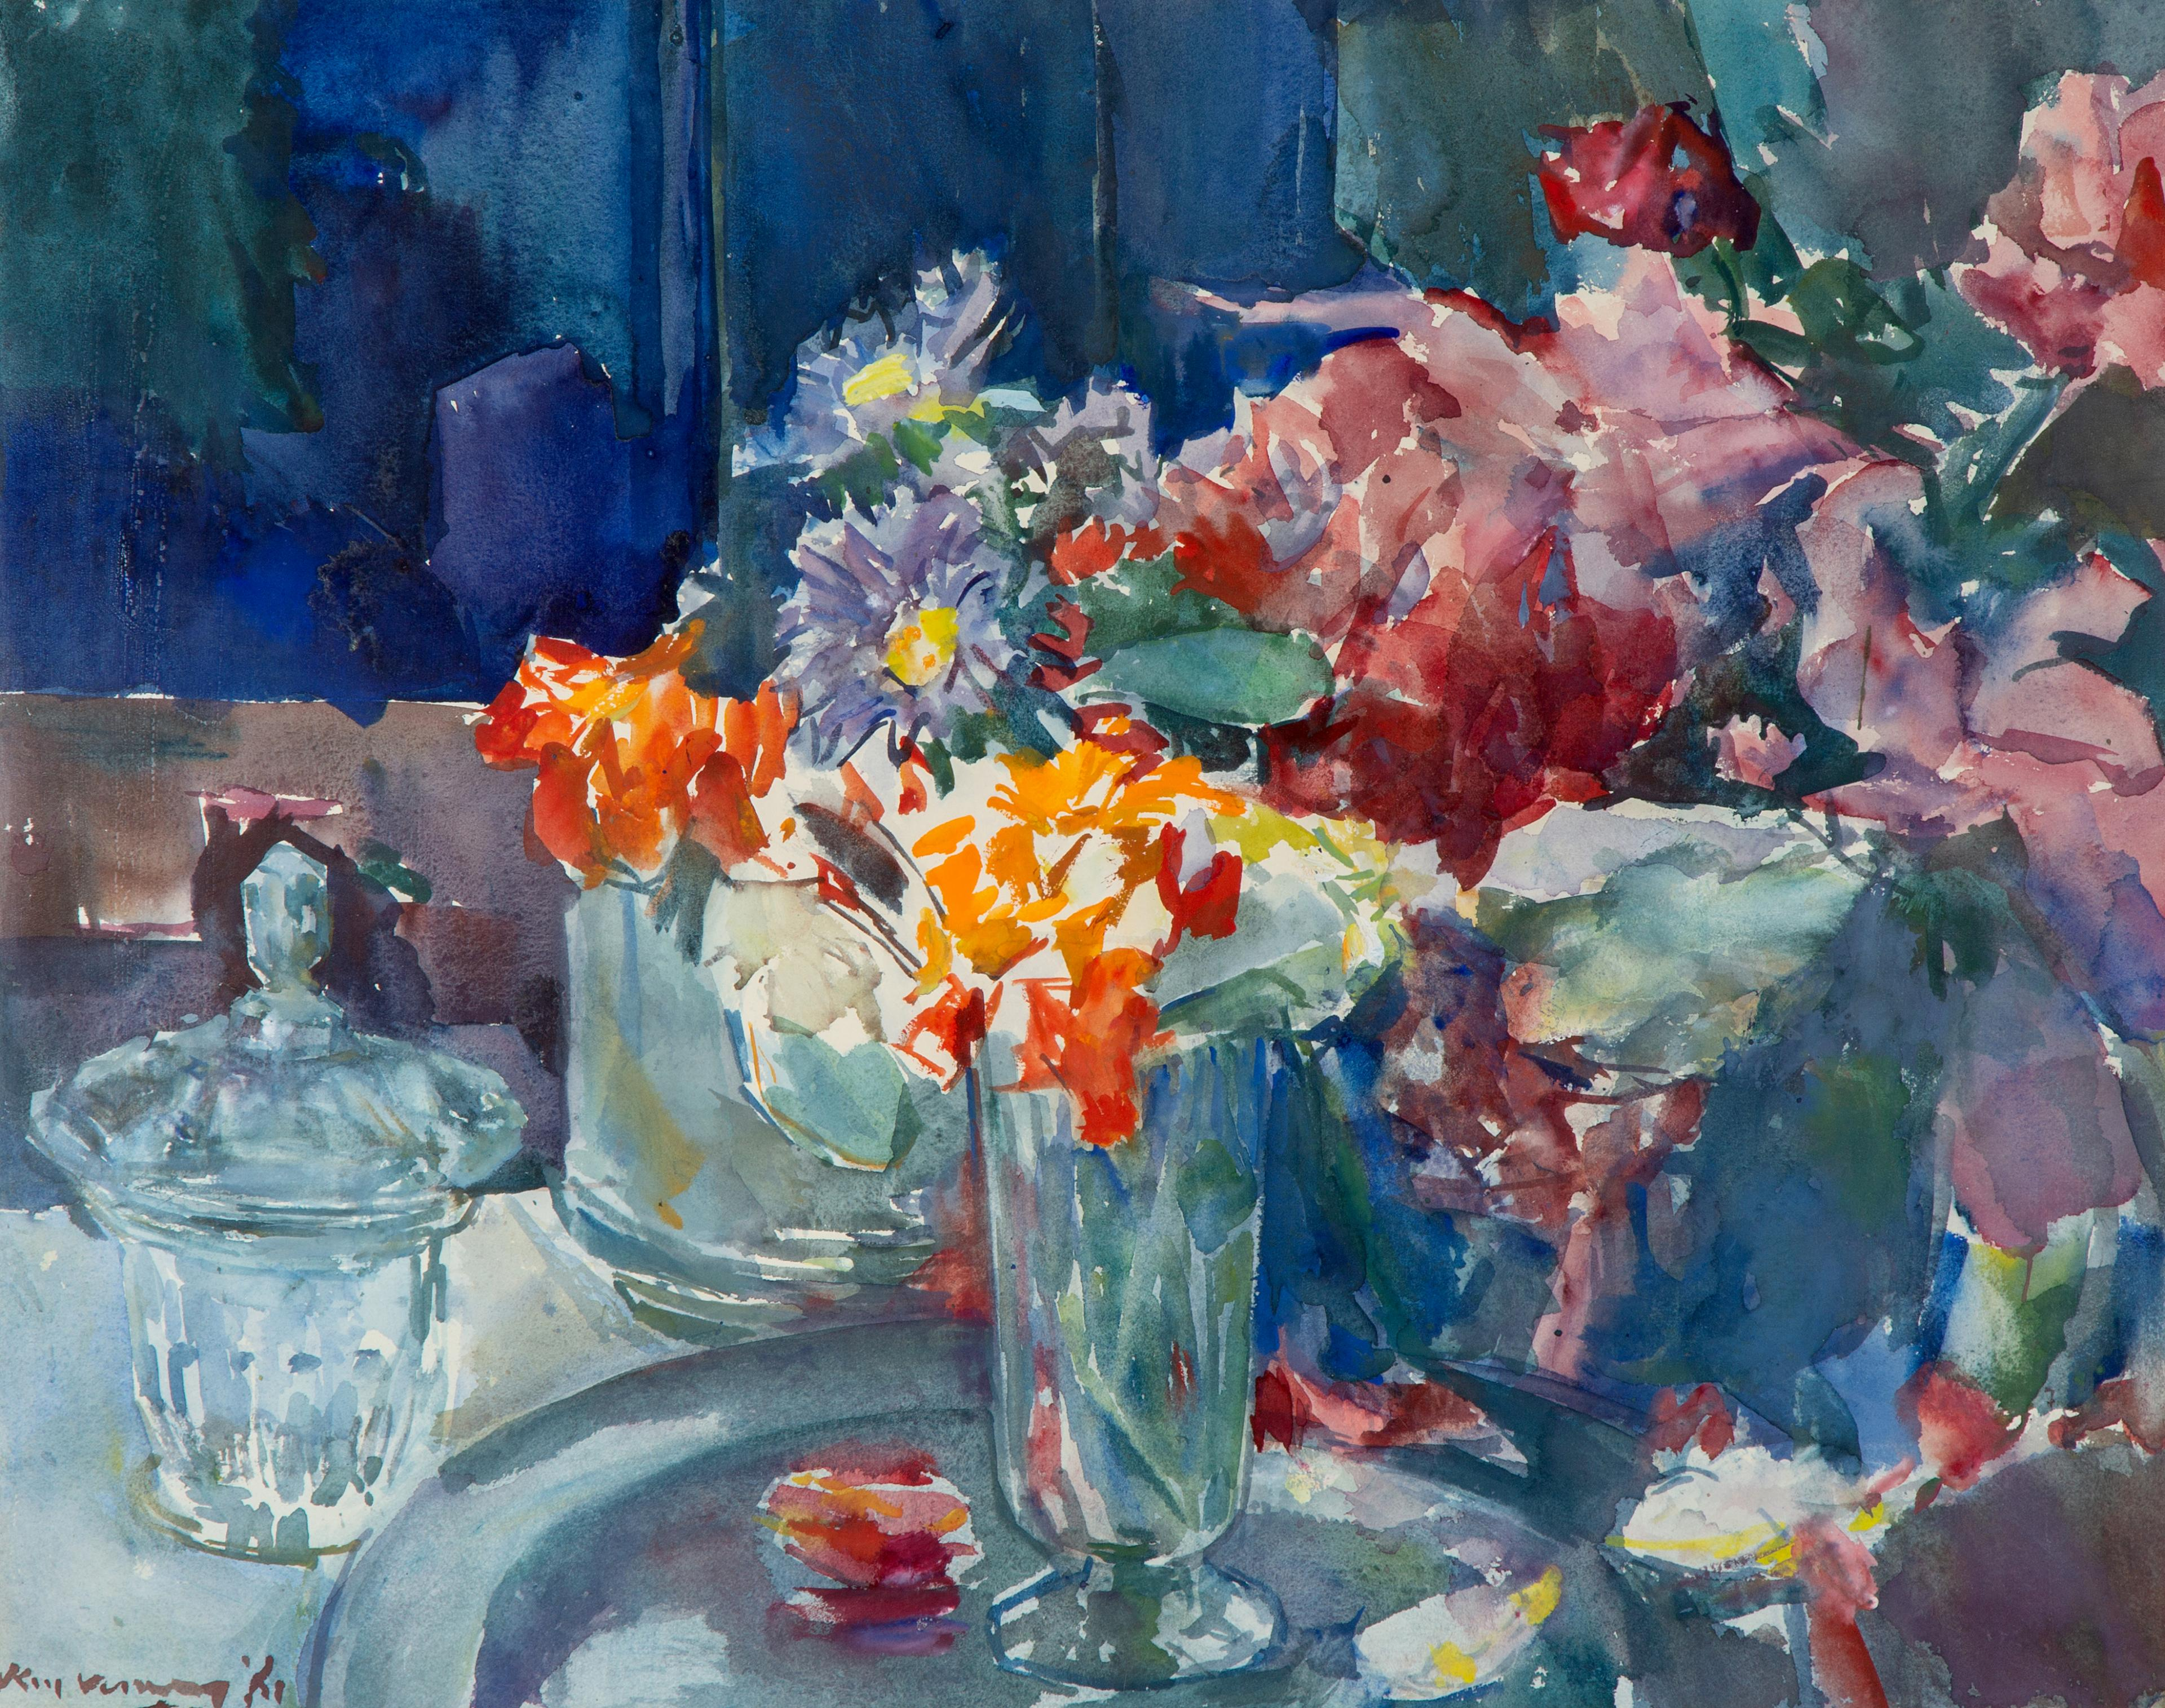 A still life with an orange and purple flowers in vases